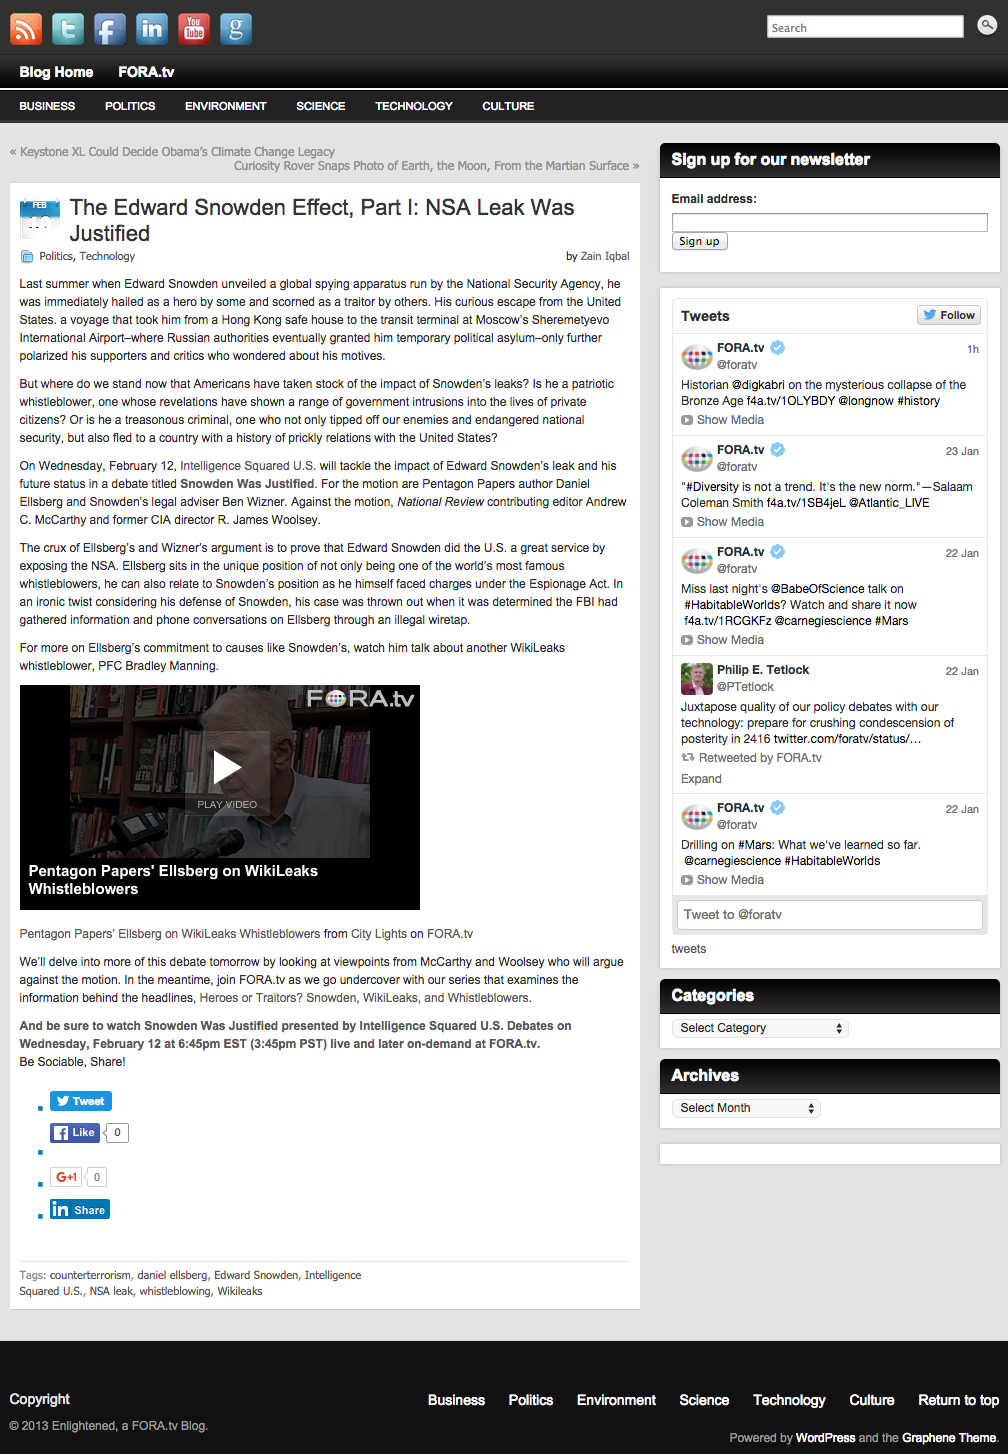 screencapture-enarchive-fora-tv-2014-02-edward-snowden-effect-nsa-leak-justified.png